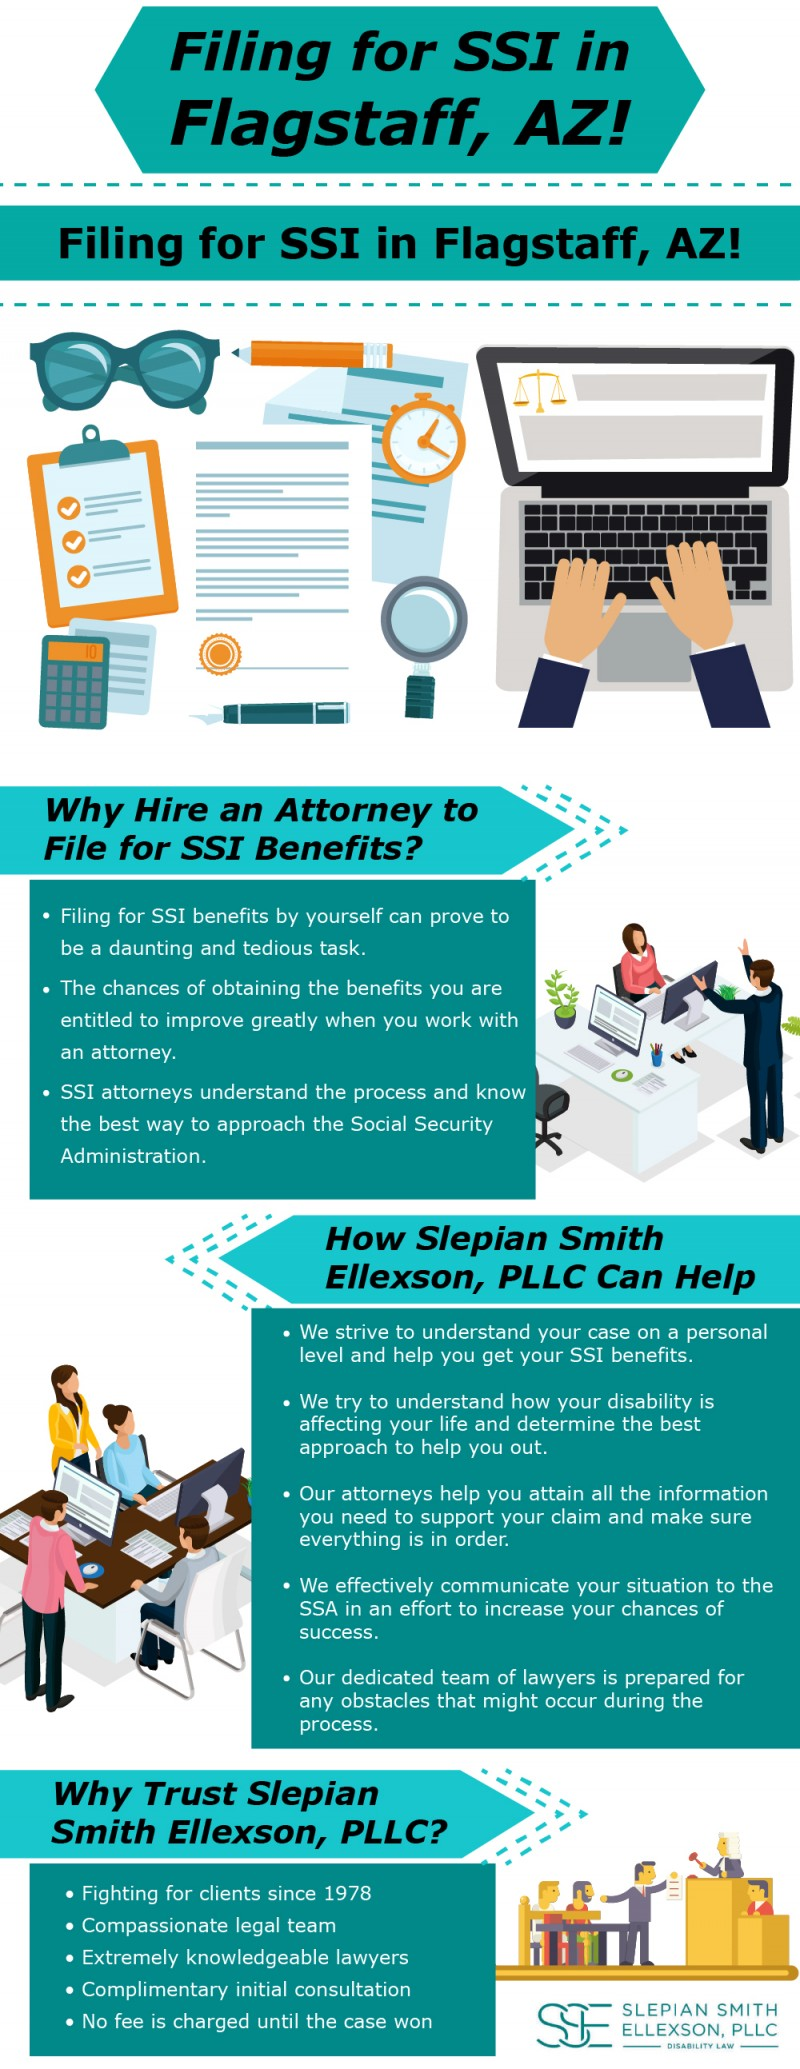 Avail for SSI in Flagstaff Az at Slepian Smith Ellexson, PLLC